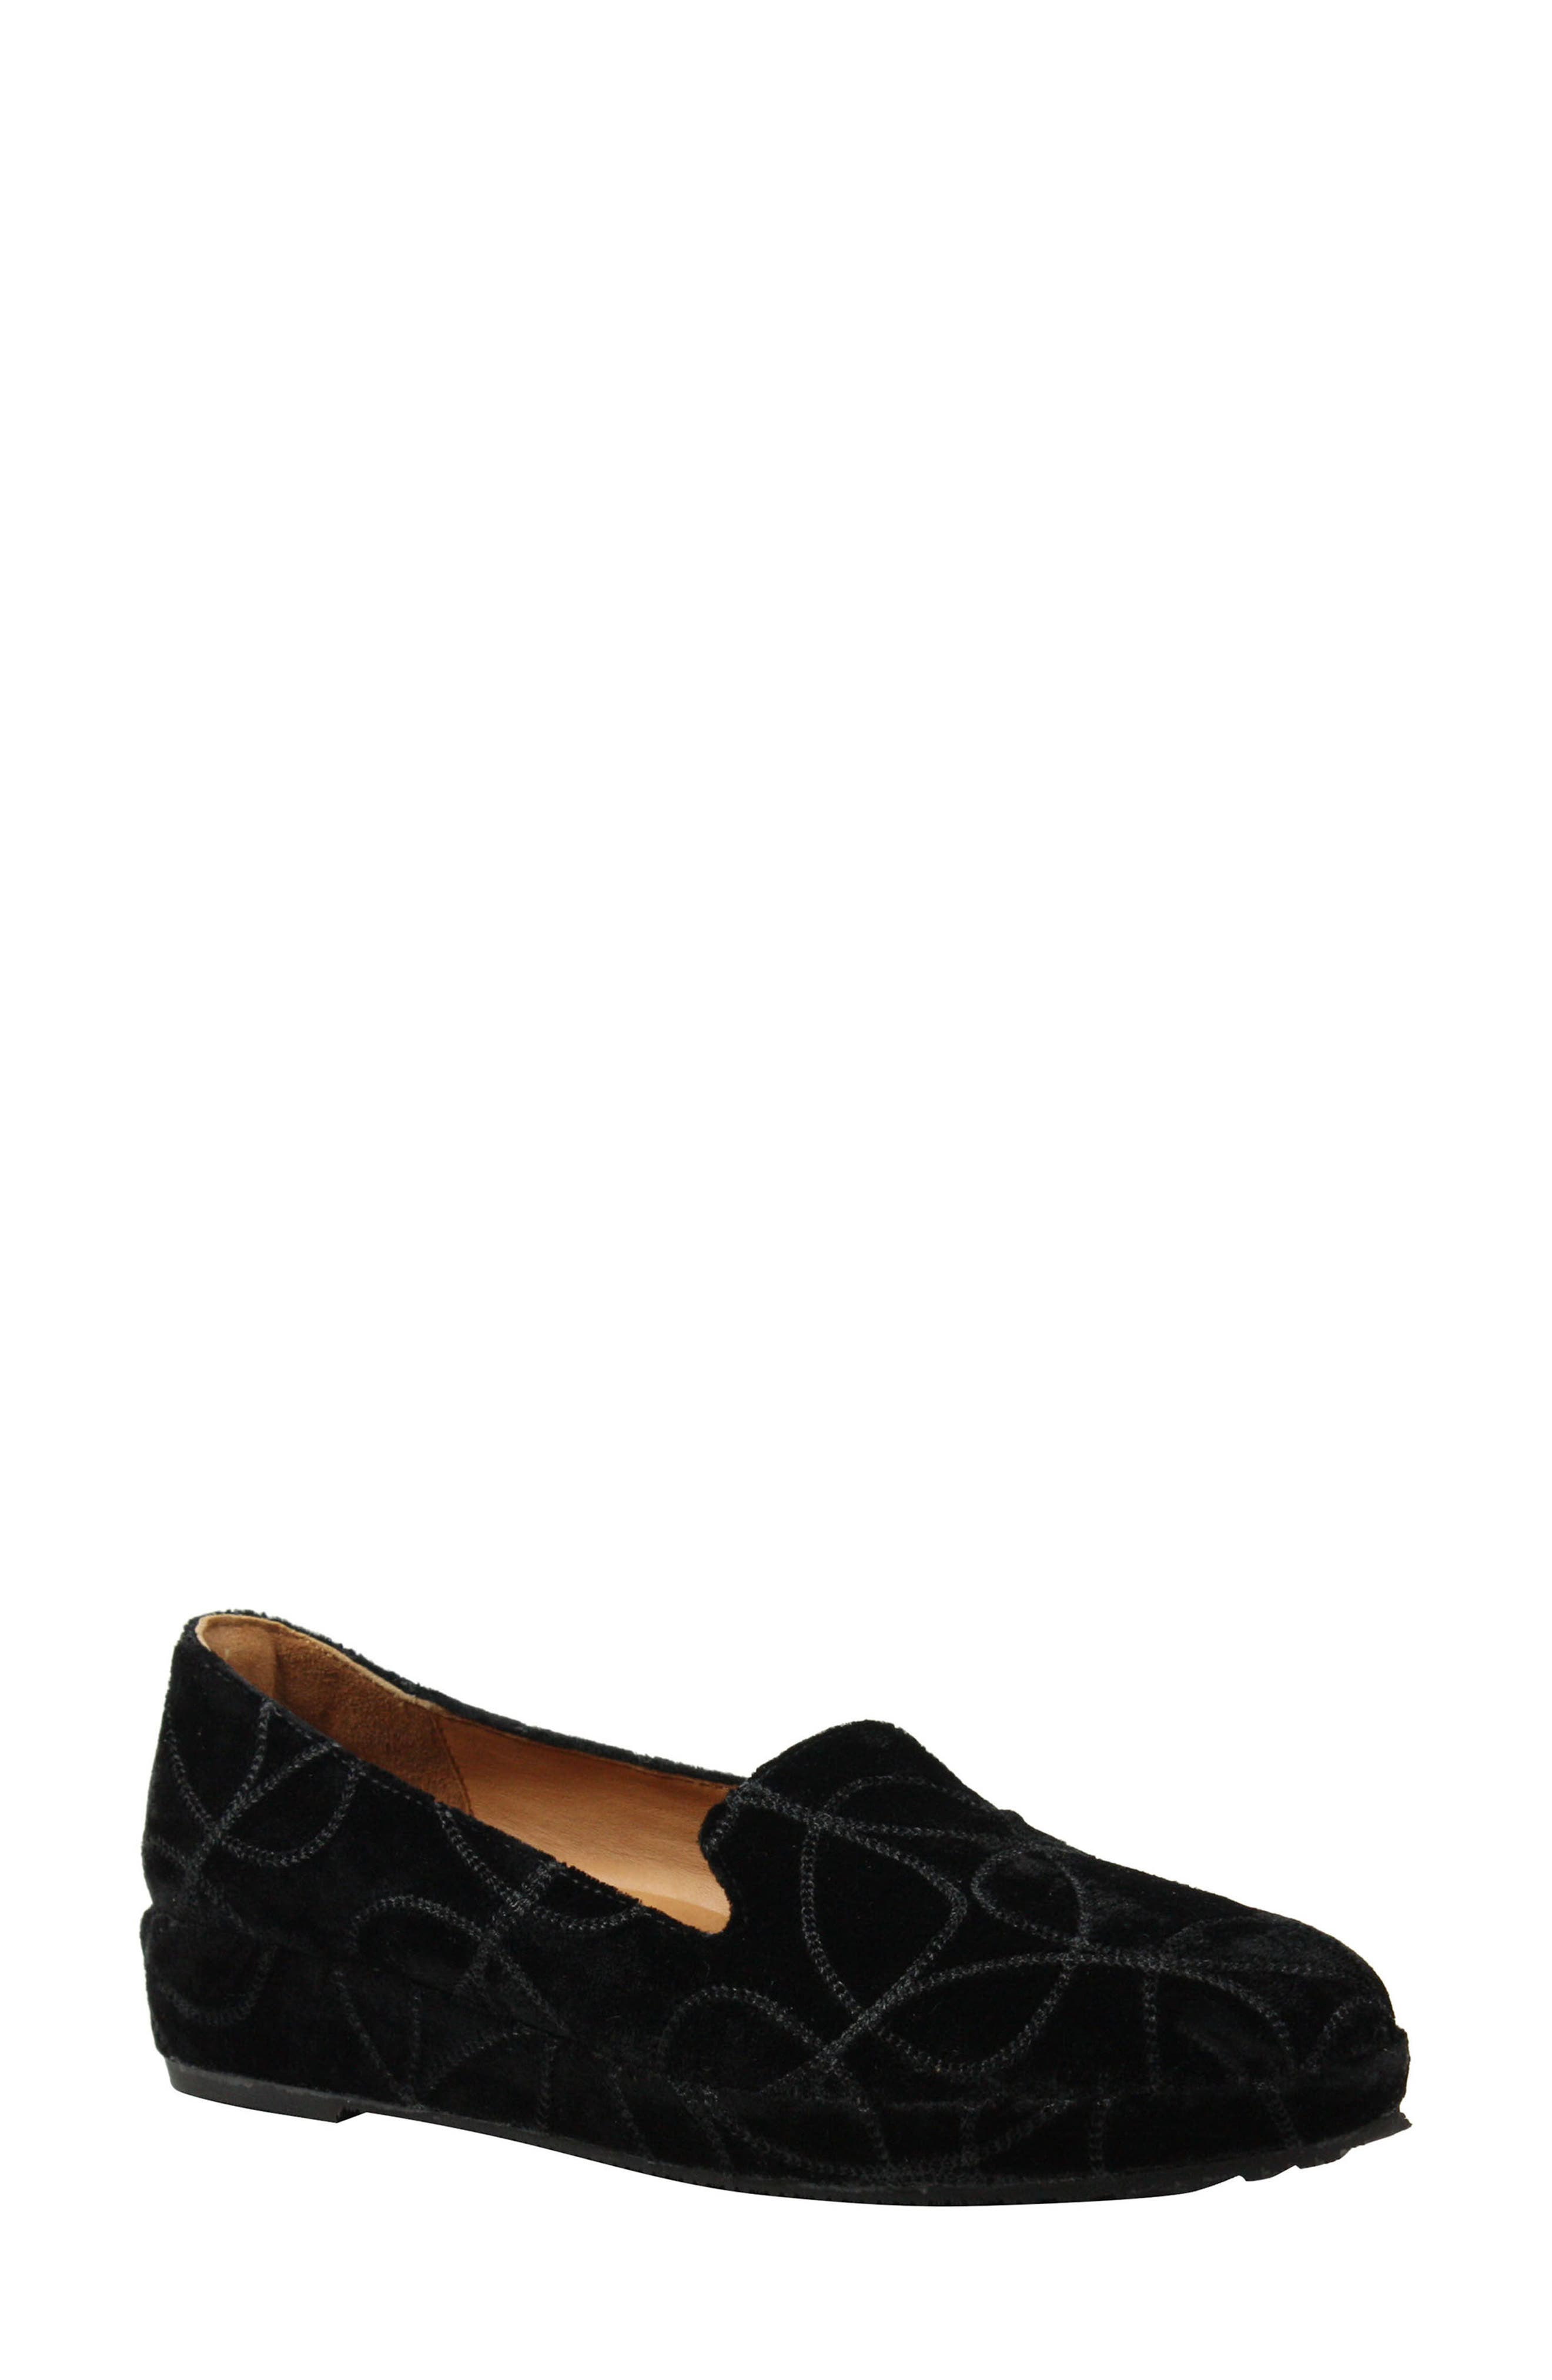 L'Amour des Pieds Carsoli Wedge Loafer (Women)